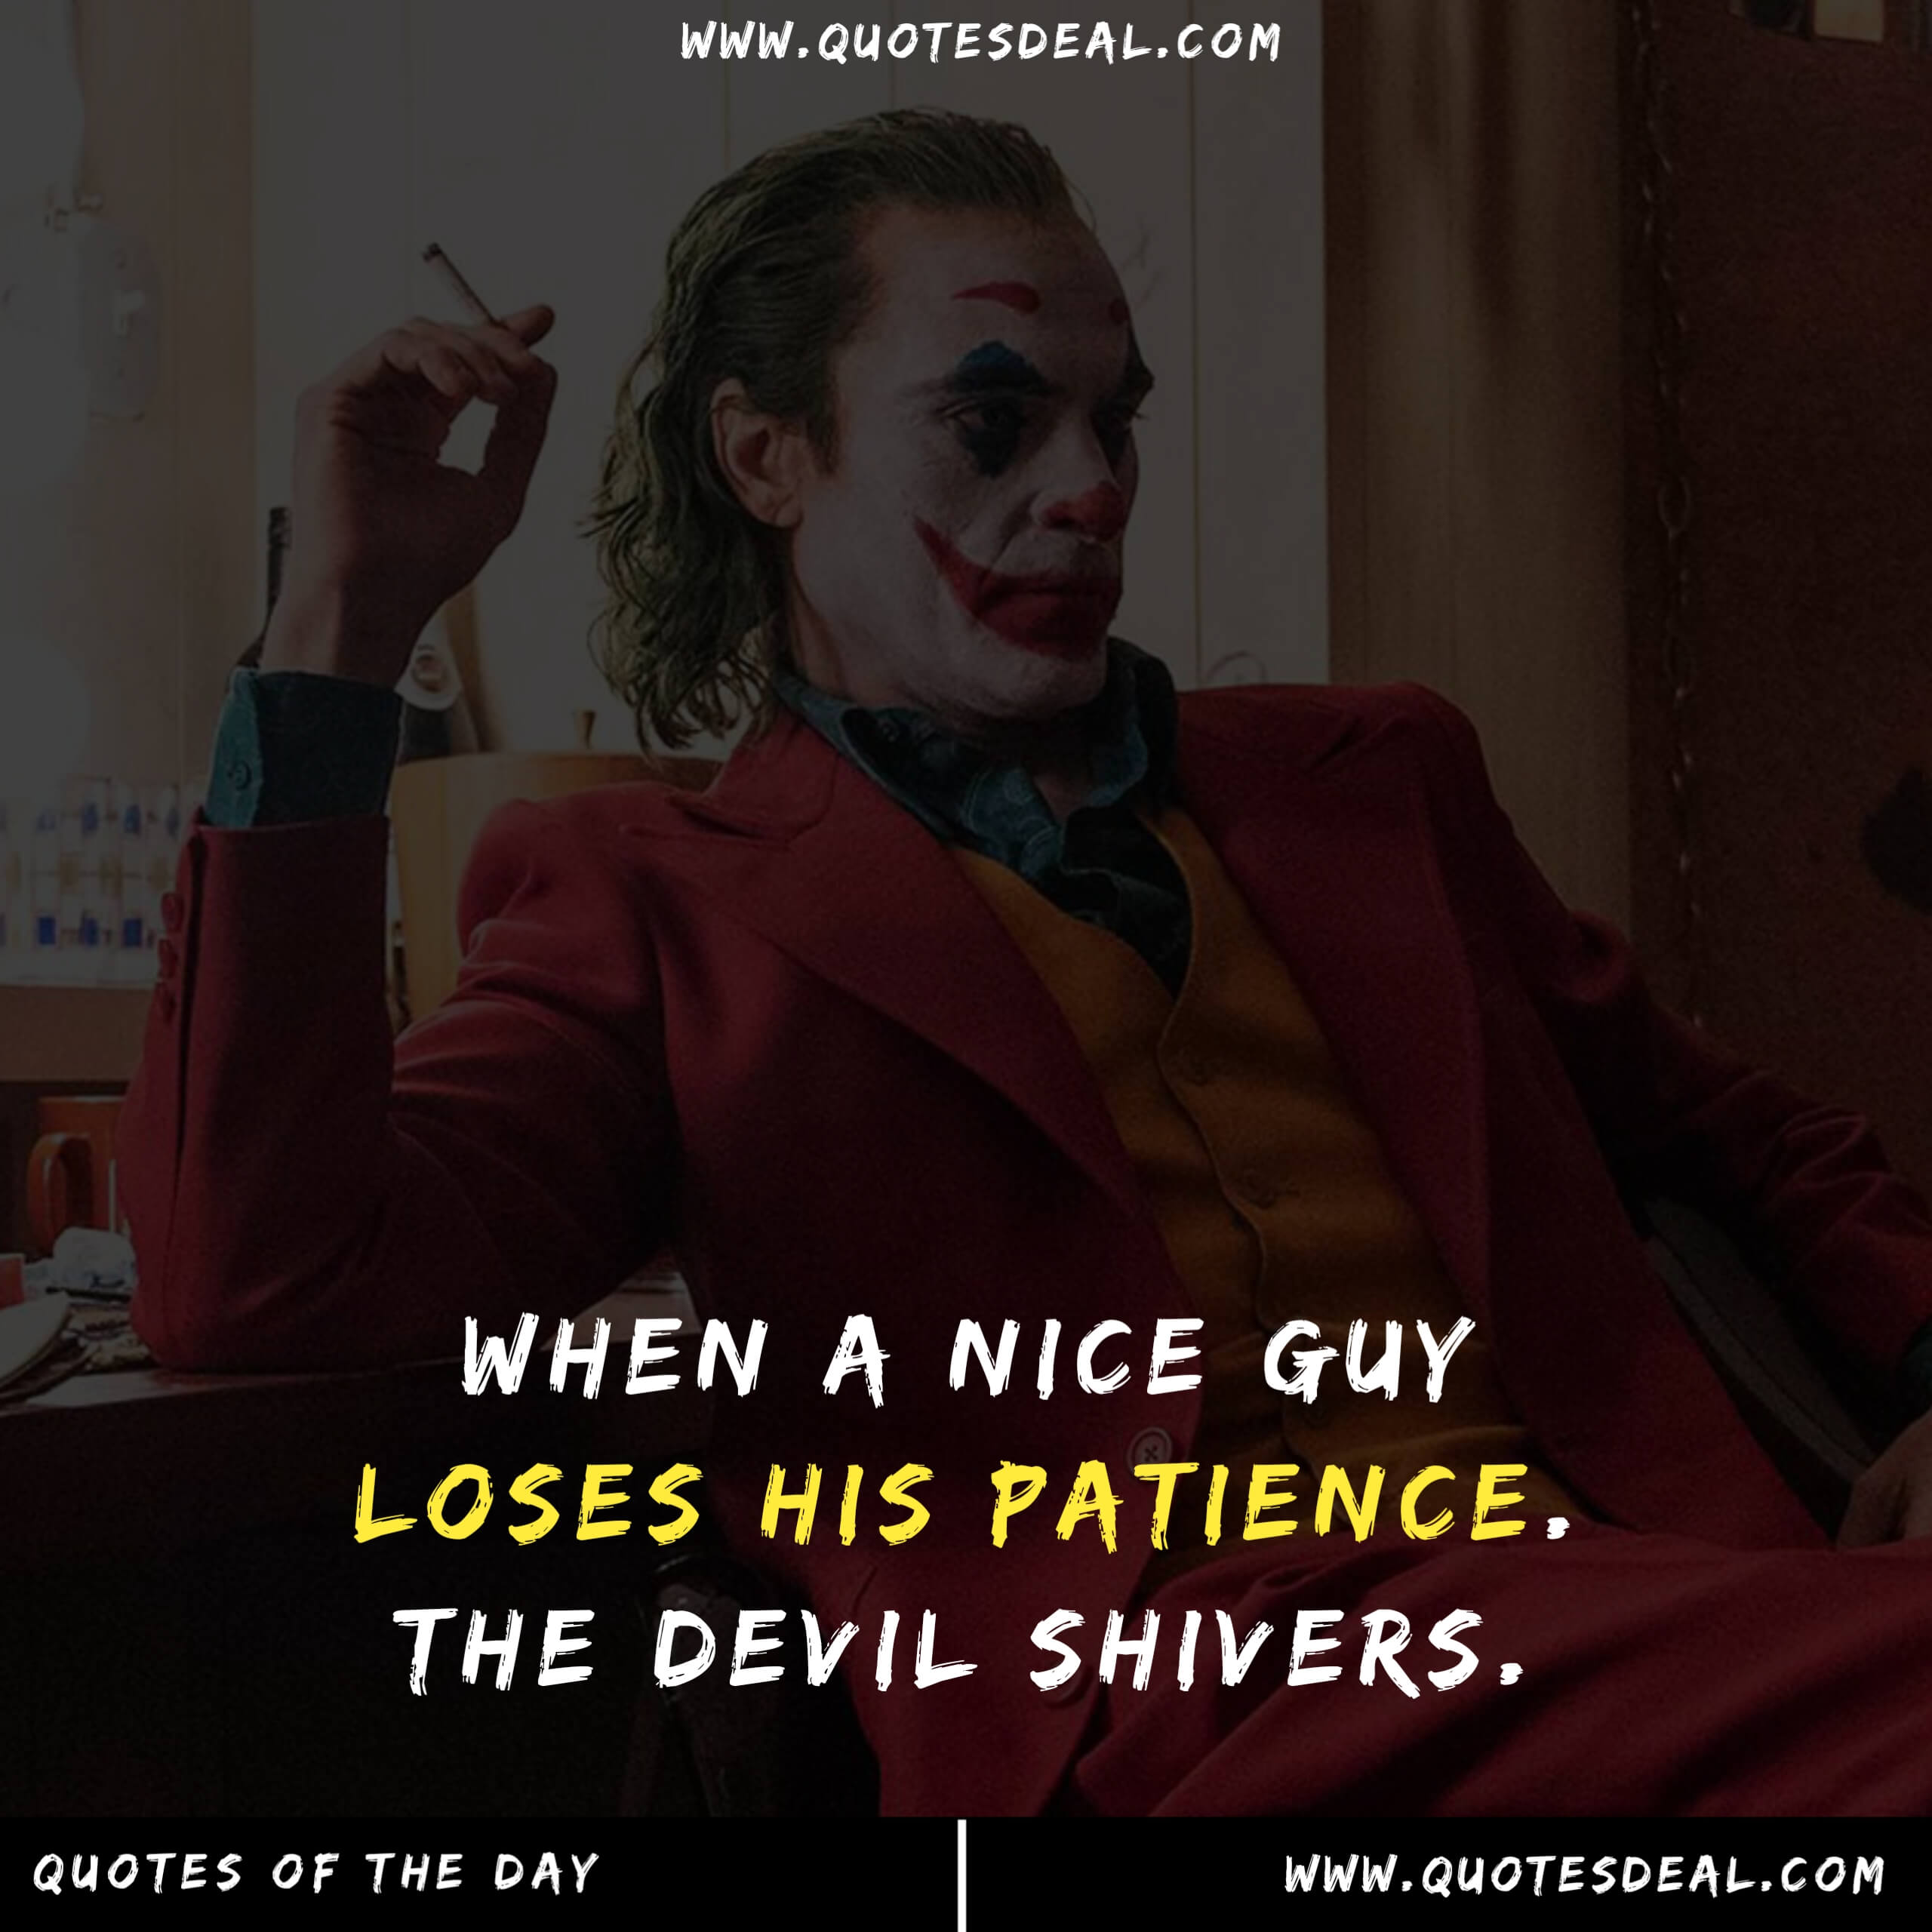 When a nice guy loses